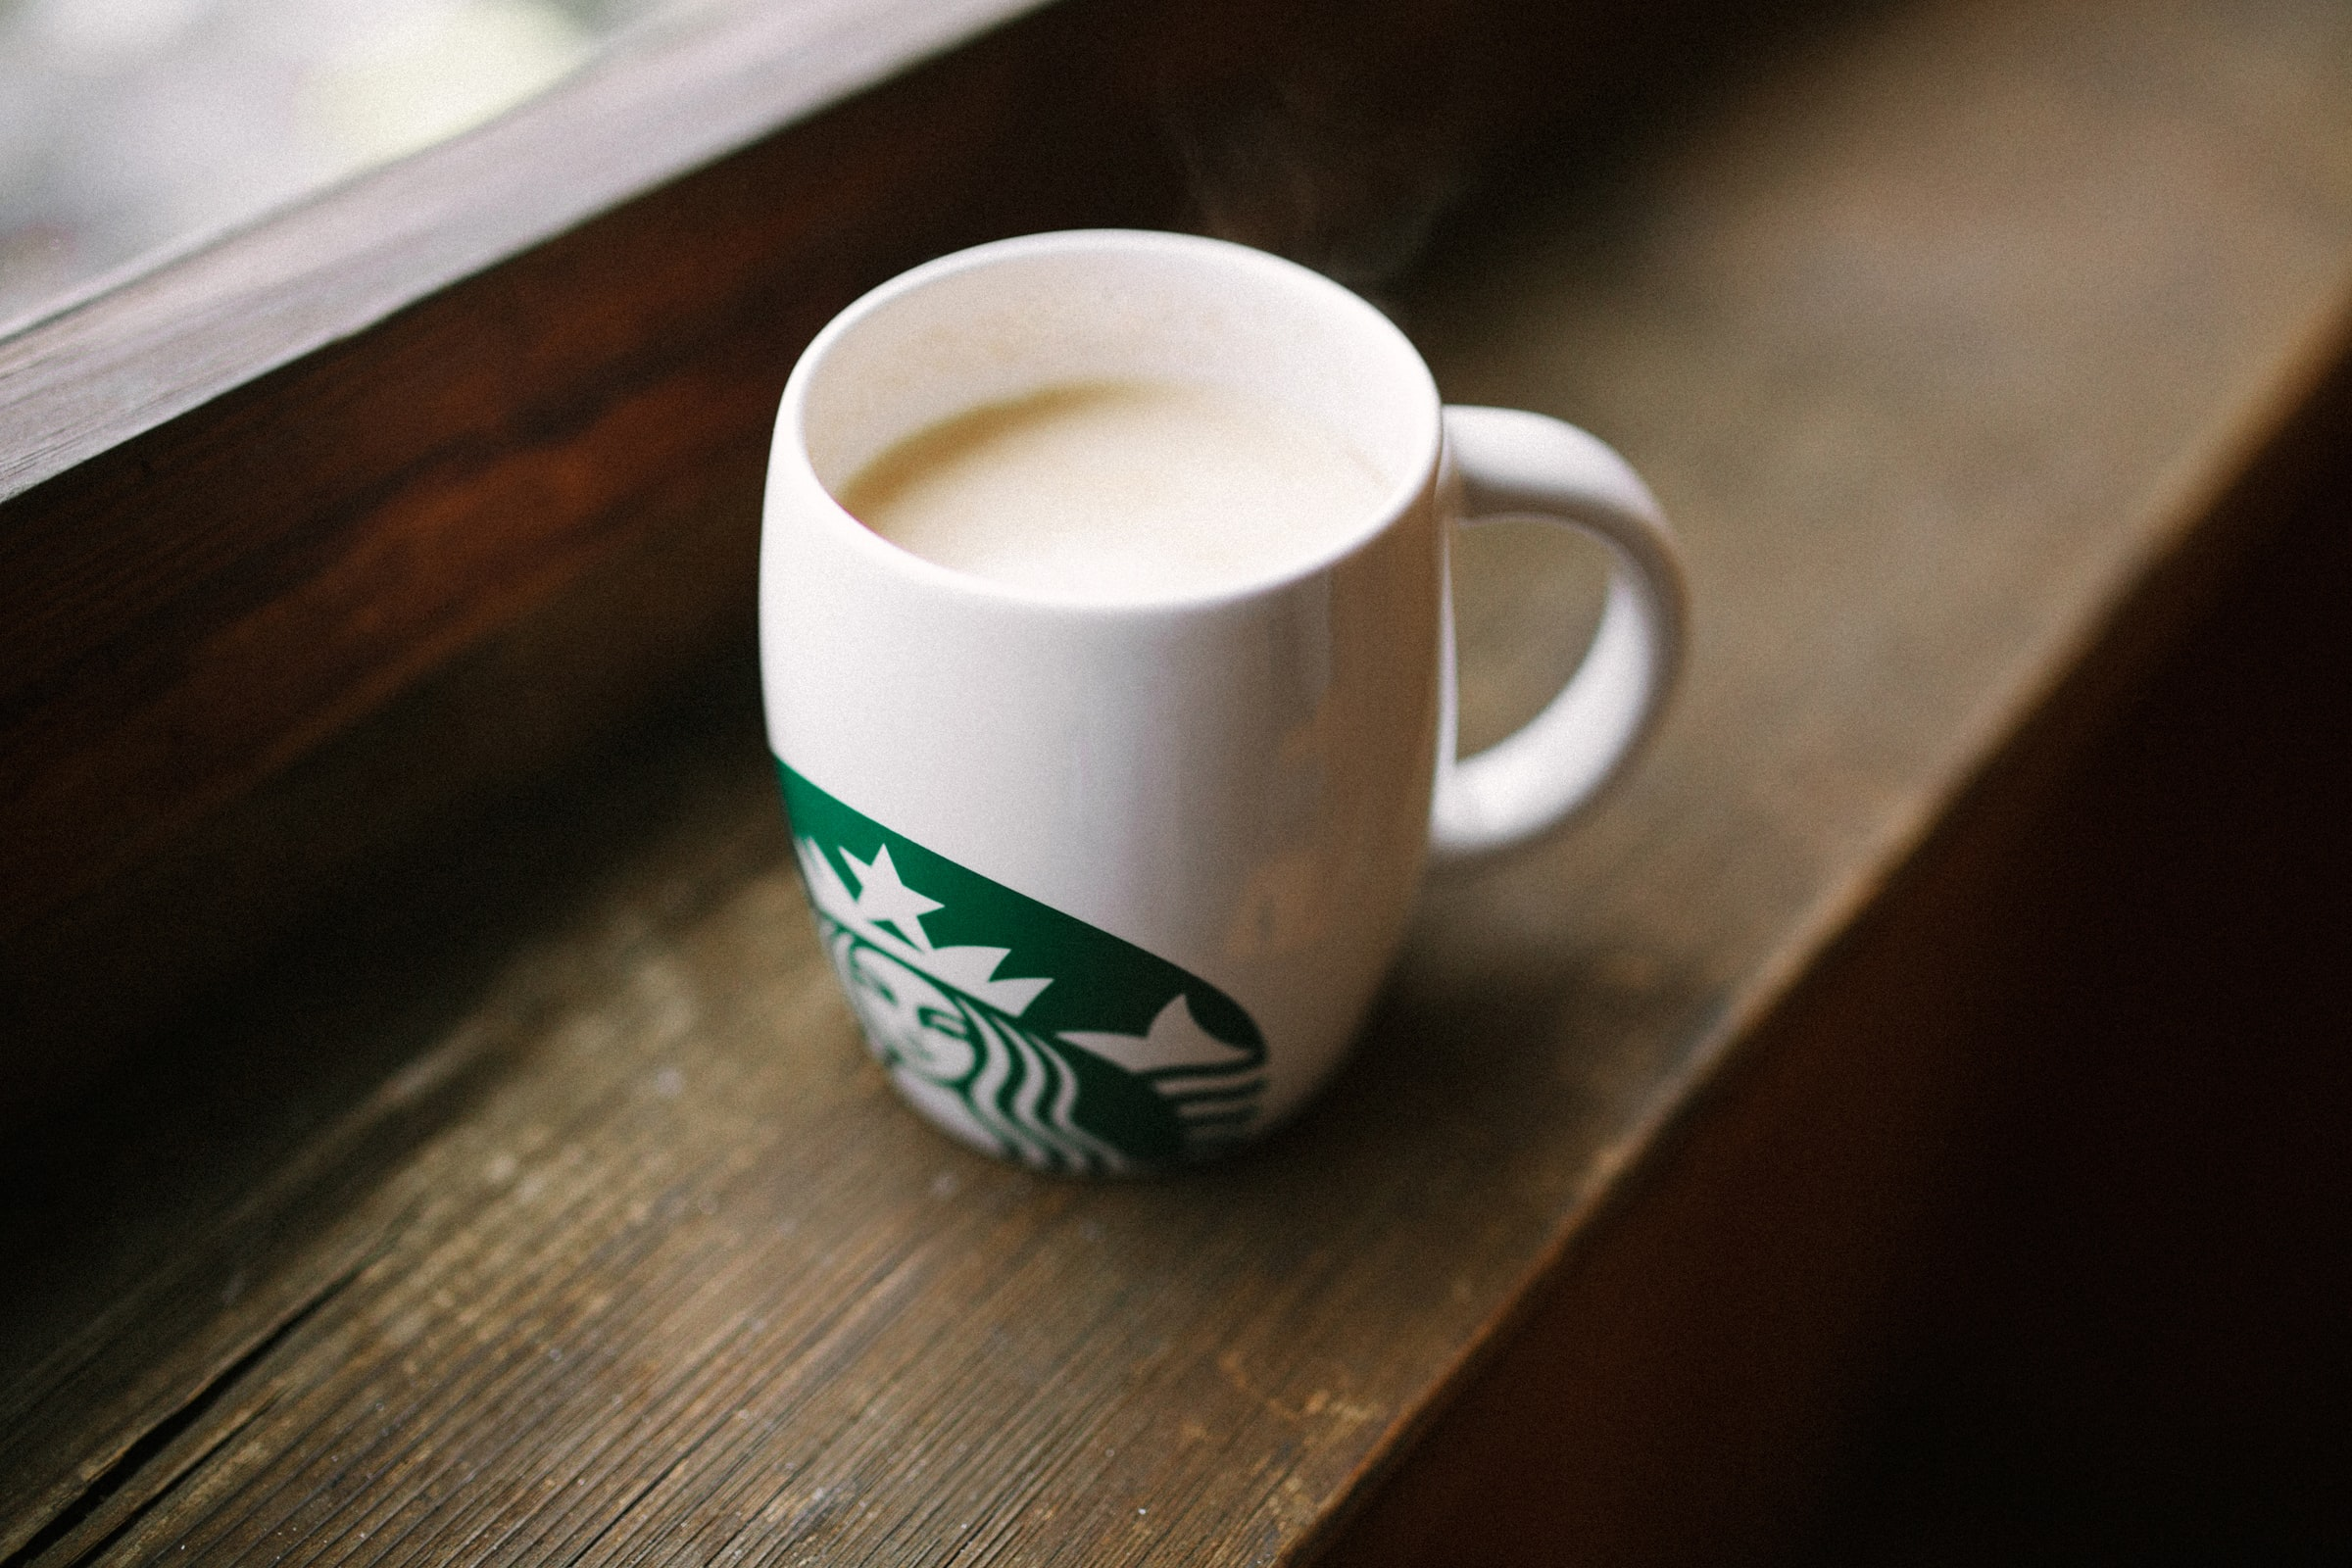 photo of white Starbucks mug on brown wooden surface